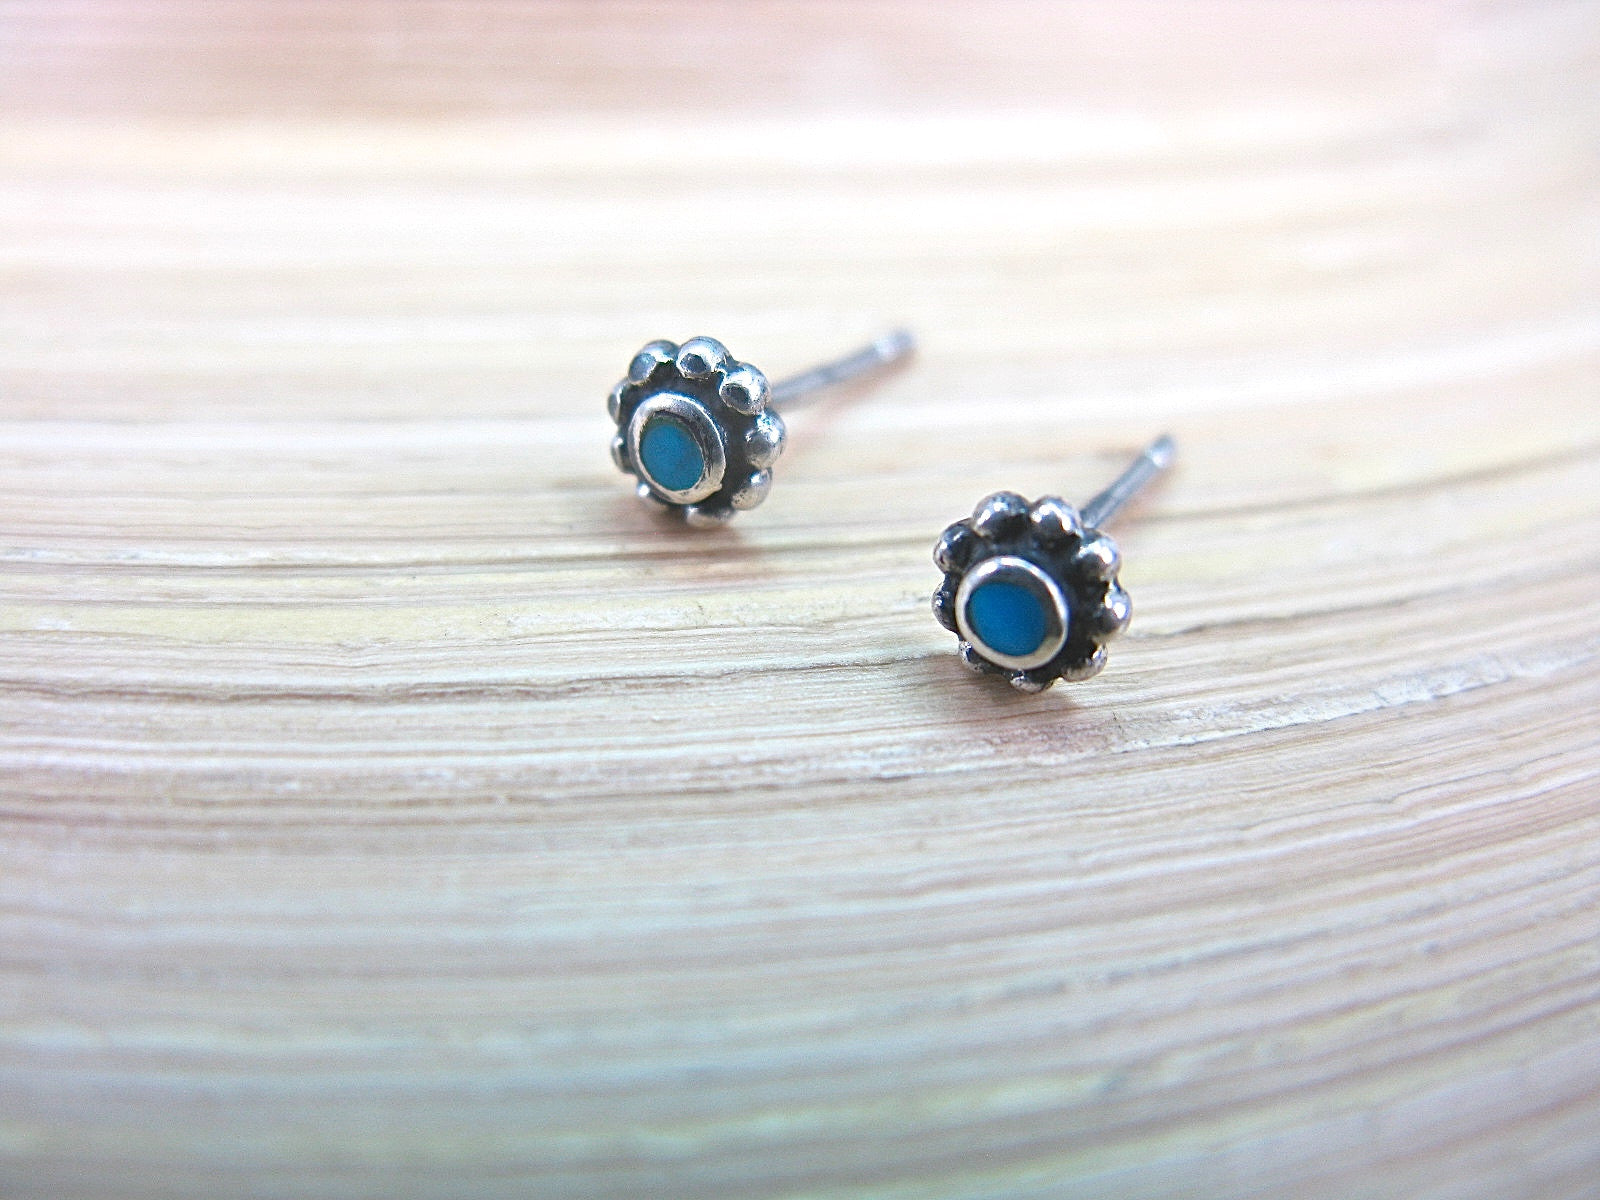 Turquoise 5mm Round Stud Earrings in 925 Sterling Silver Stud Faith Owl - Faith Owl